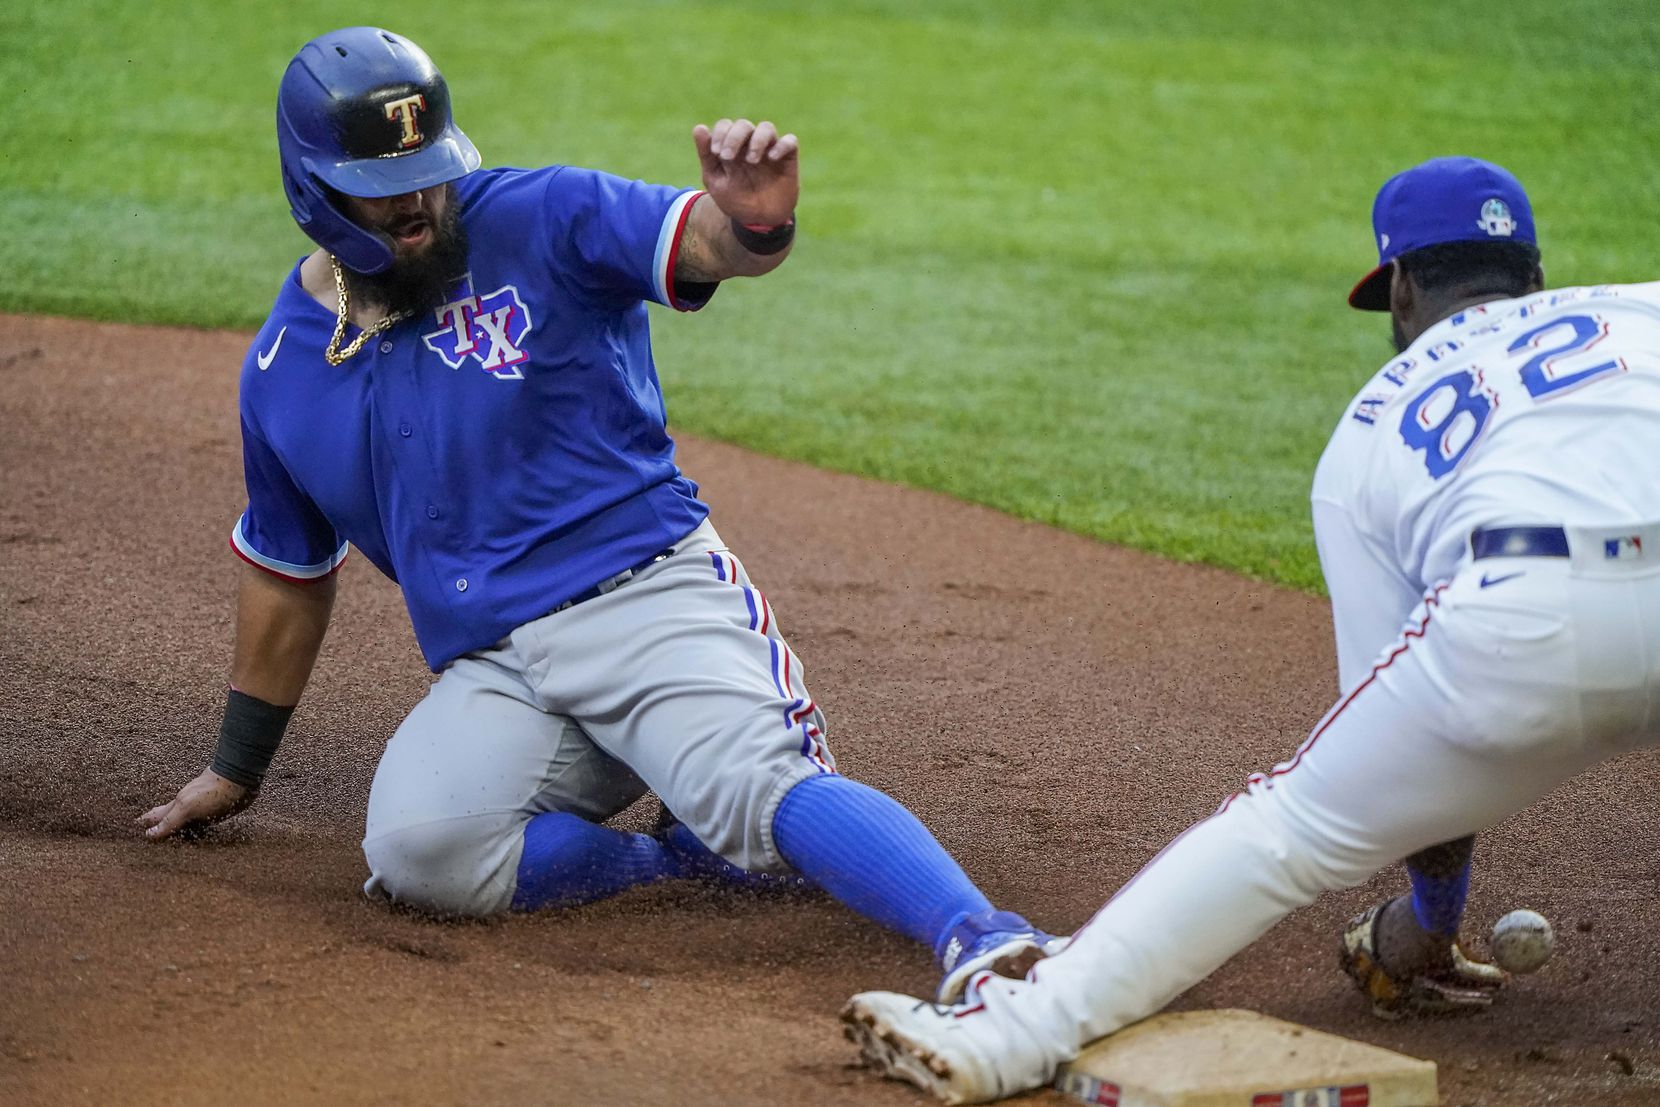 Second baseman Rougned Odor is safe at third base with a steal as the ball gets away from infielder Sherten Apostel in an intrasquad game during Texas Rangers Summer Camp at Globe Life Field on Friday, July 17, 2020.